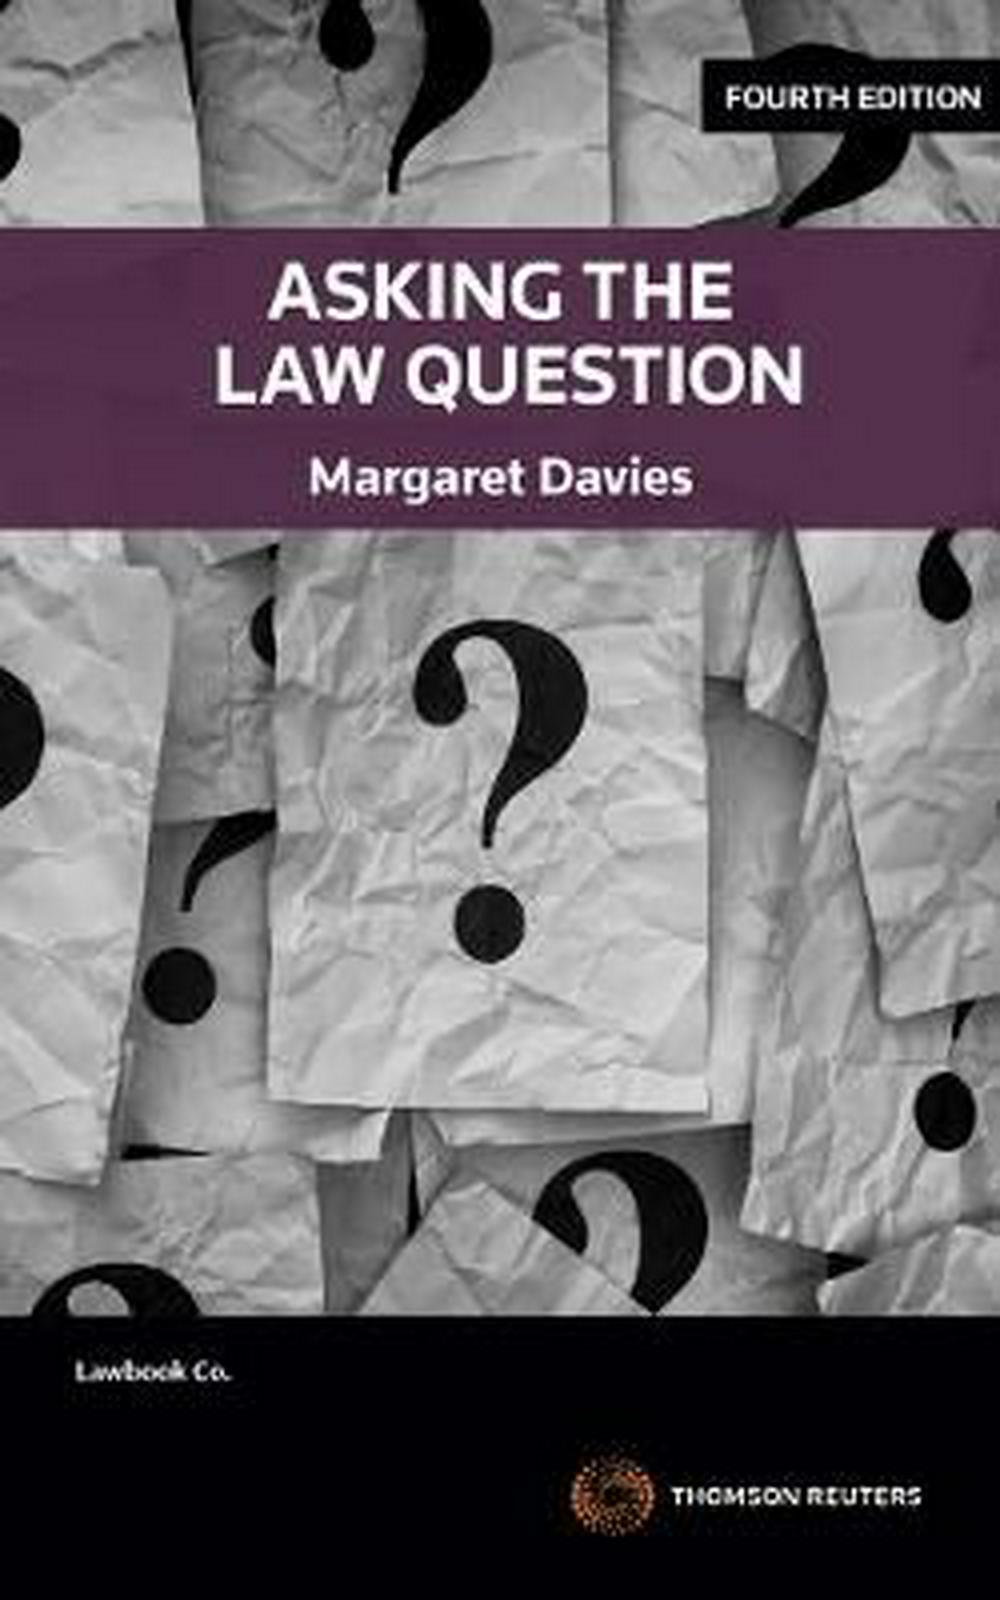 Asking the Law Question by Margaret Davies, ISBN: 9780455238067